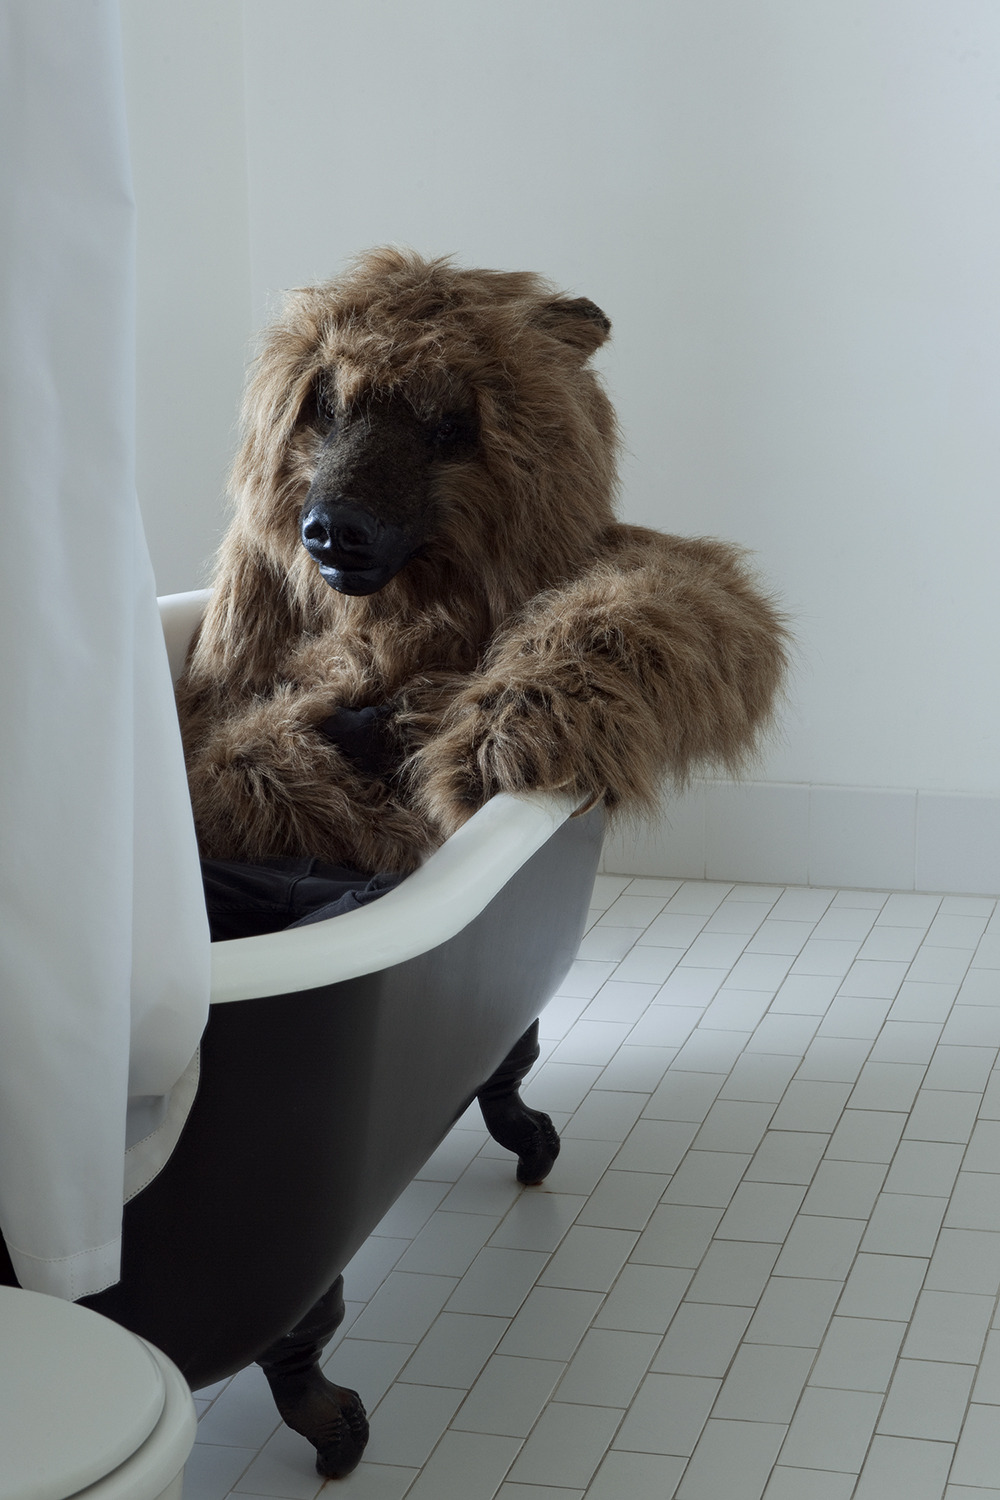 Bear in Bath at the Ace Hotel.